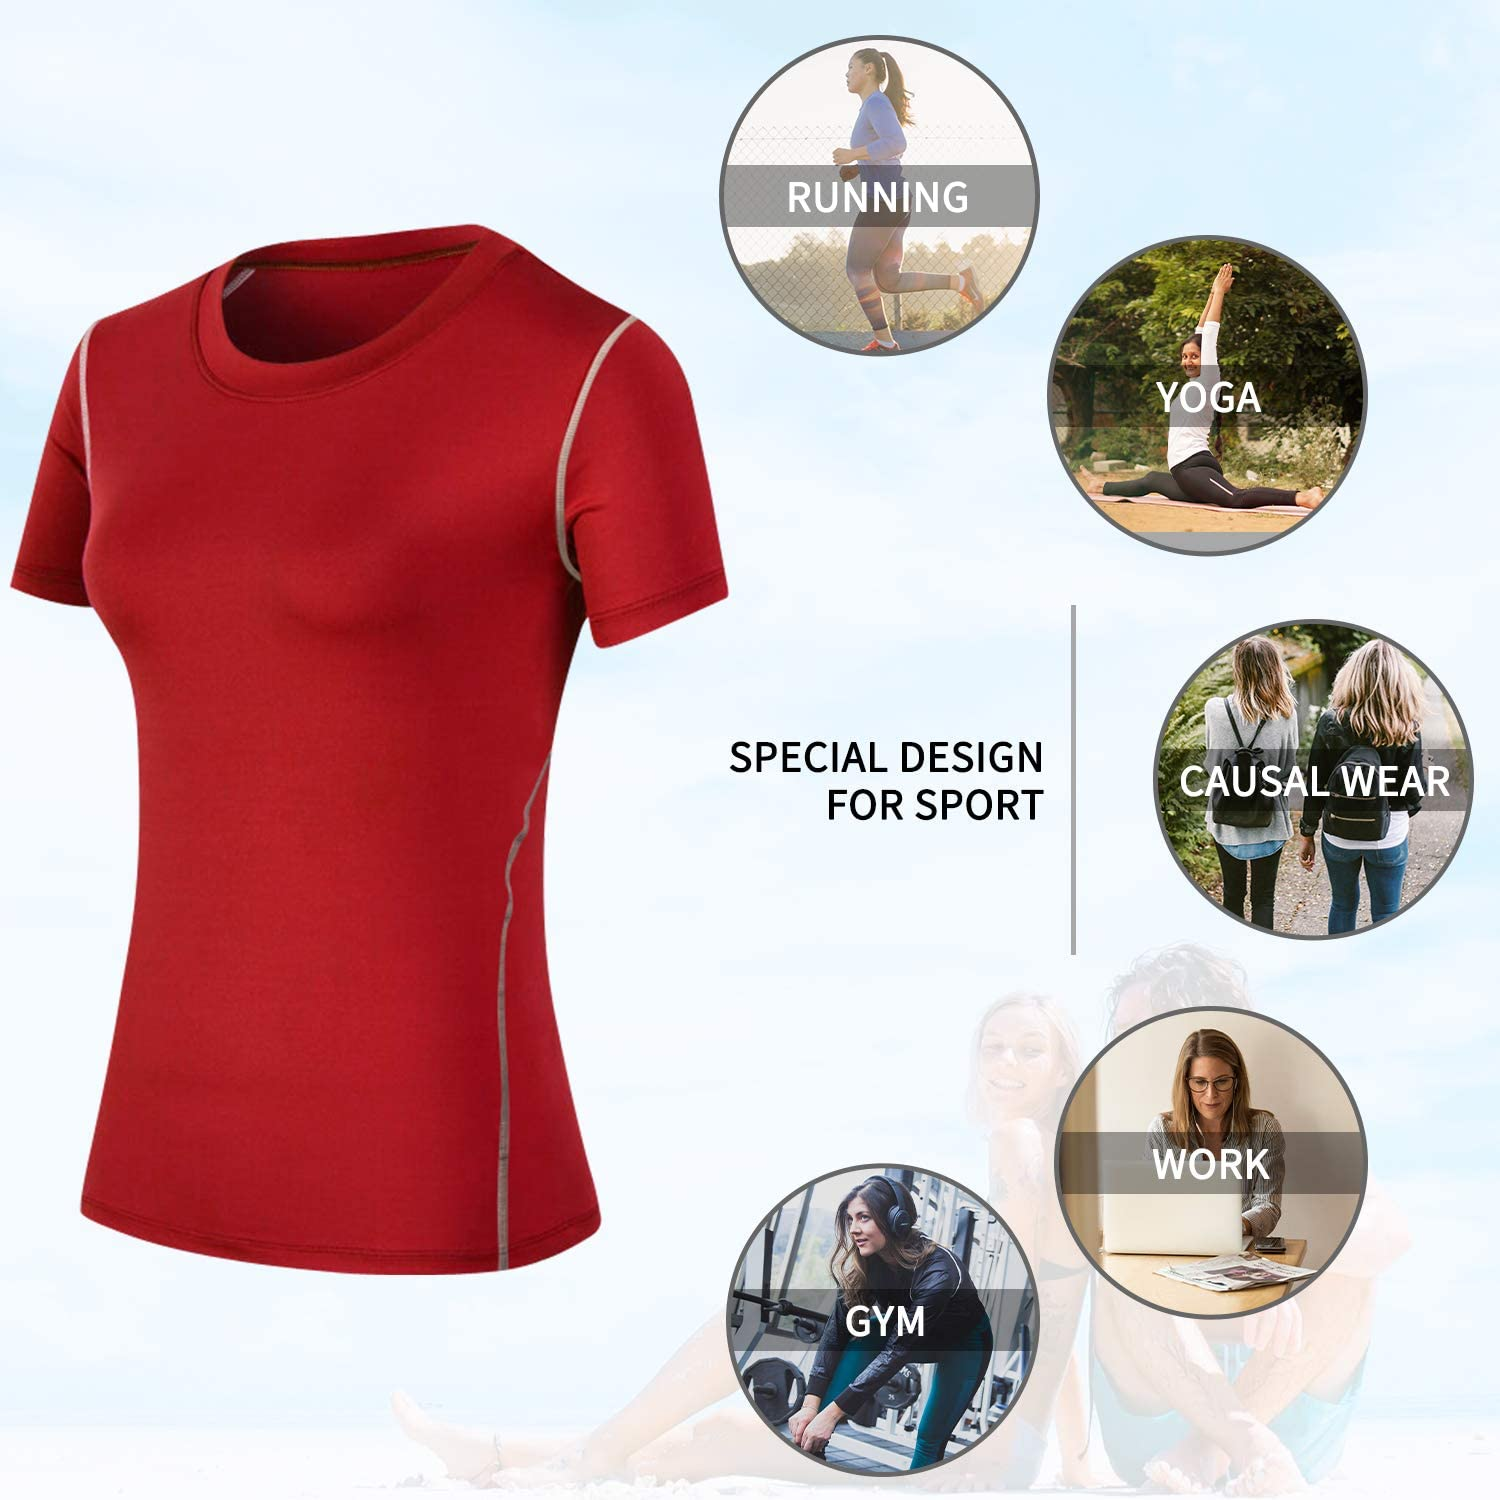 Athletic Short Sleeve T-Shirt Compression Tops Workout Shirts for Women Running